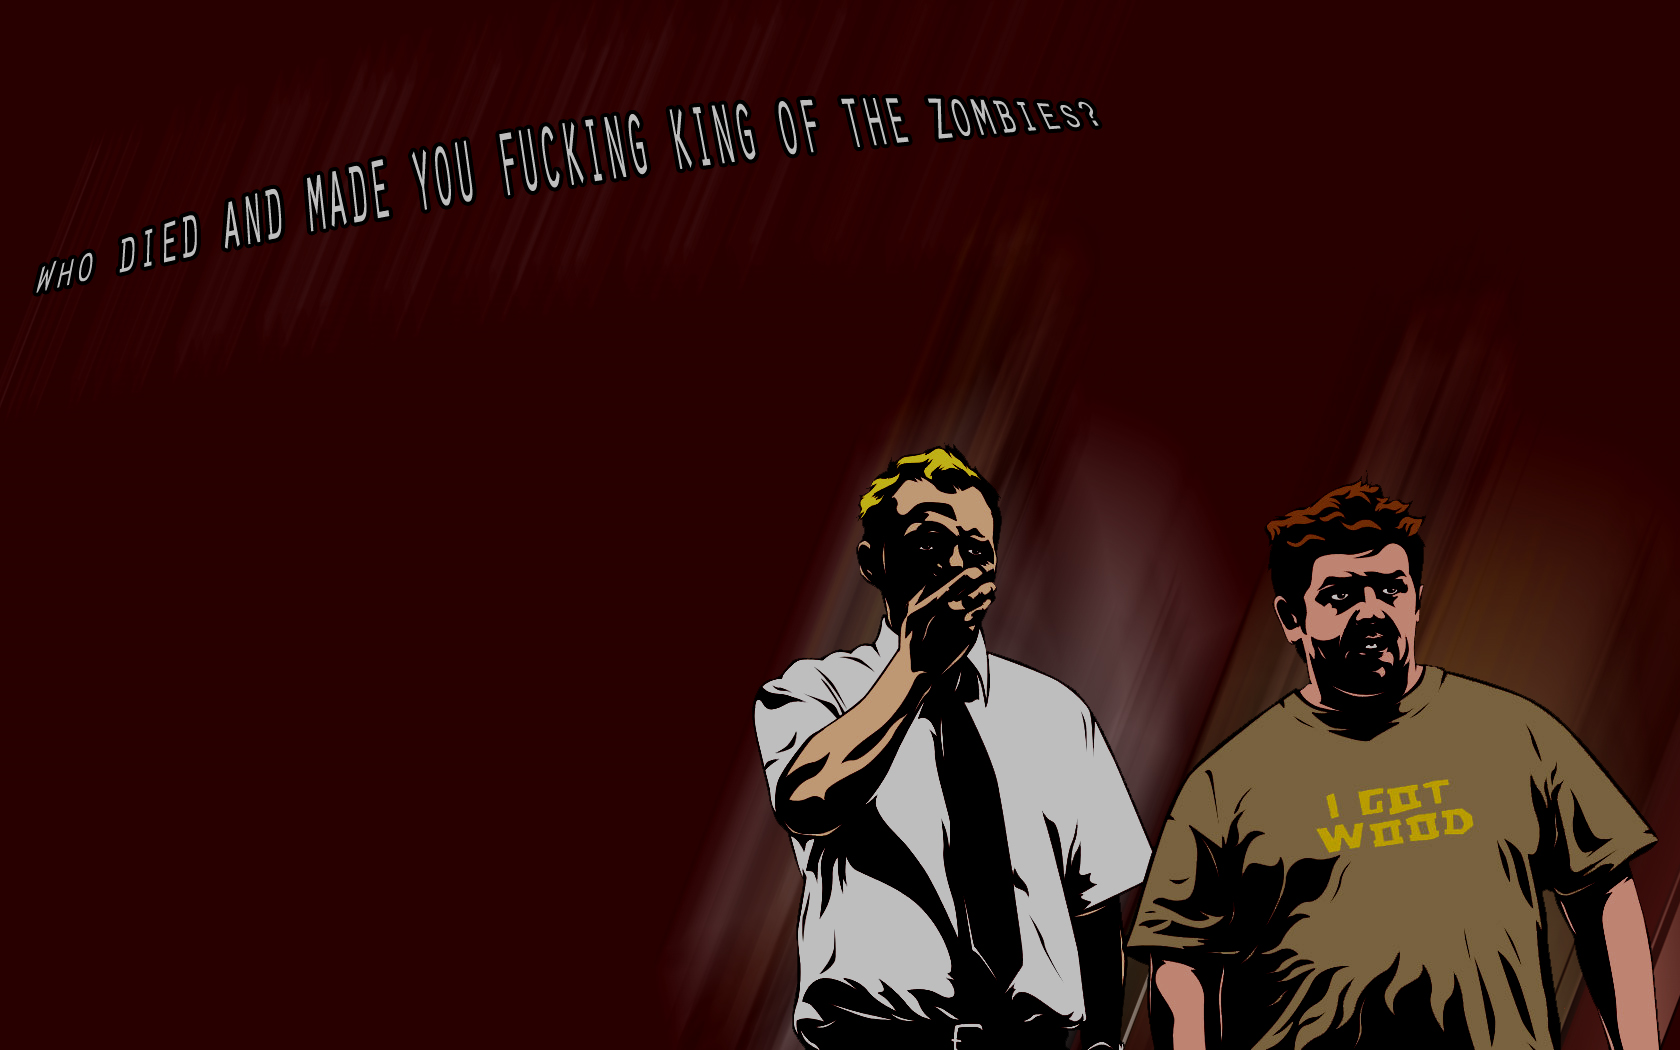 shaun of the dead wallpaper - photo #2